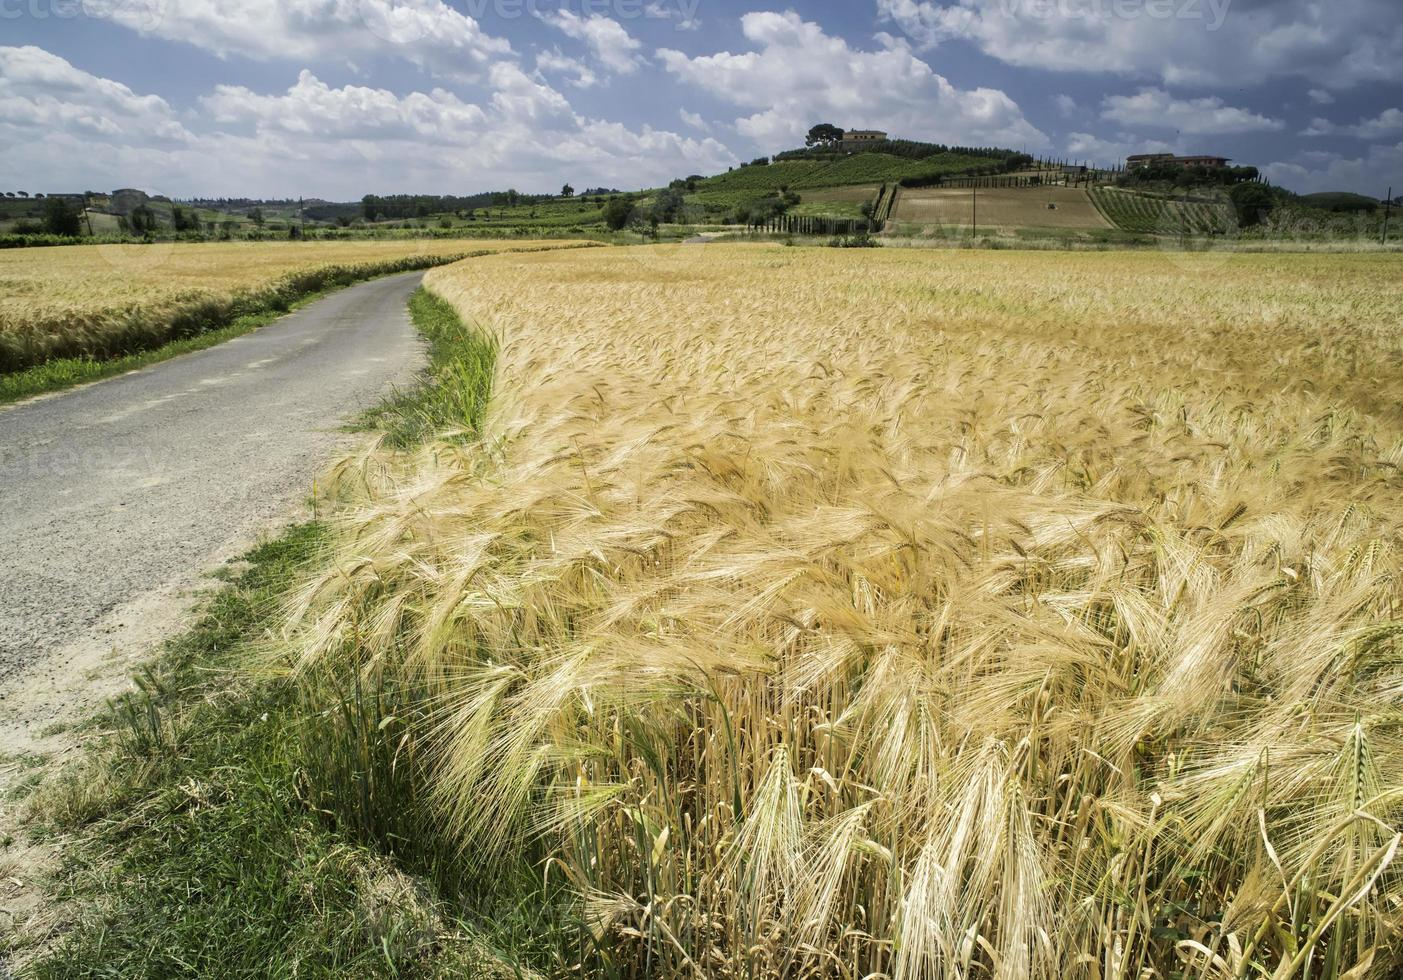 Cereal crops and farm in Tuscany photo